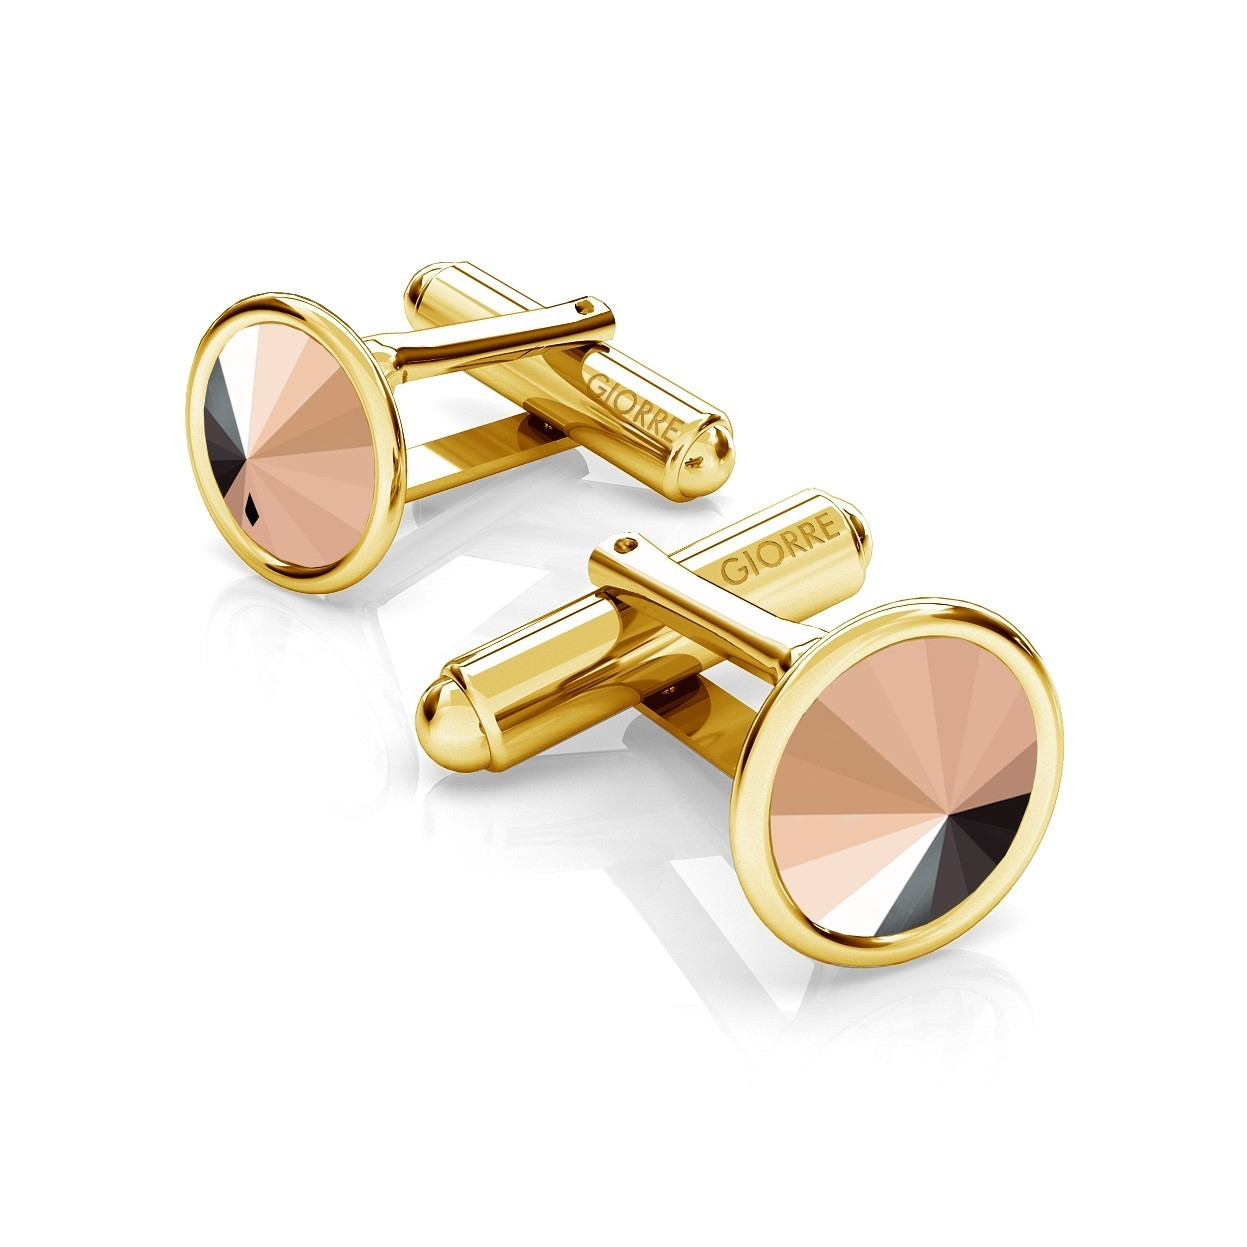 RIVOLI CUFFLINKS, SWAROVSKI 1122 MM 10, SILVER 925, RHODIUM OR GOLD PLATED